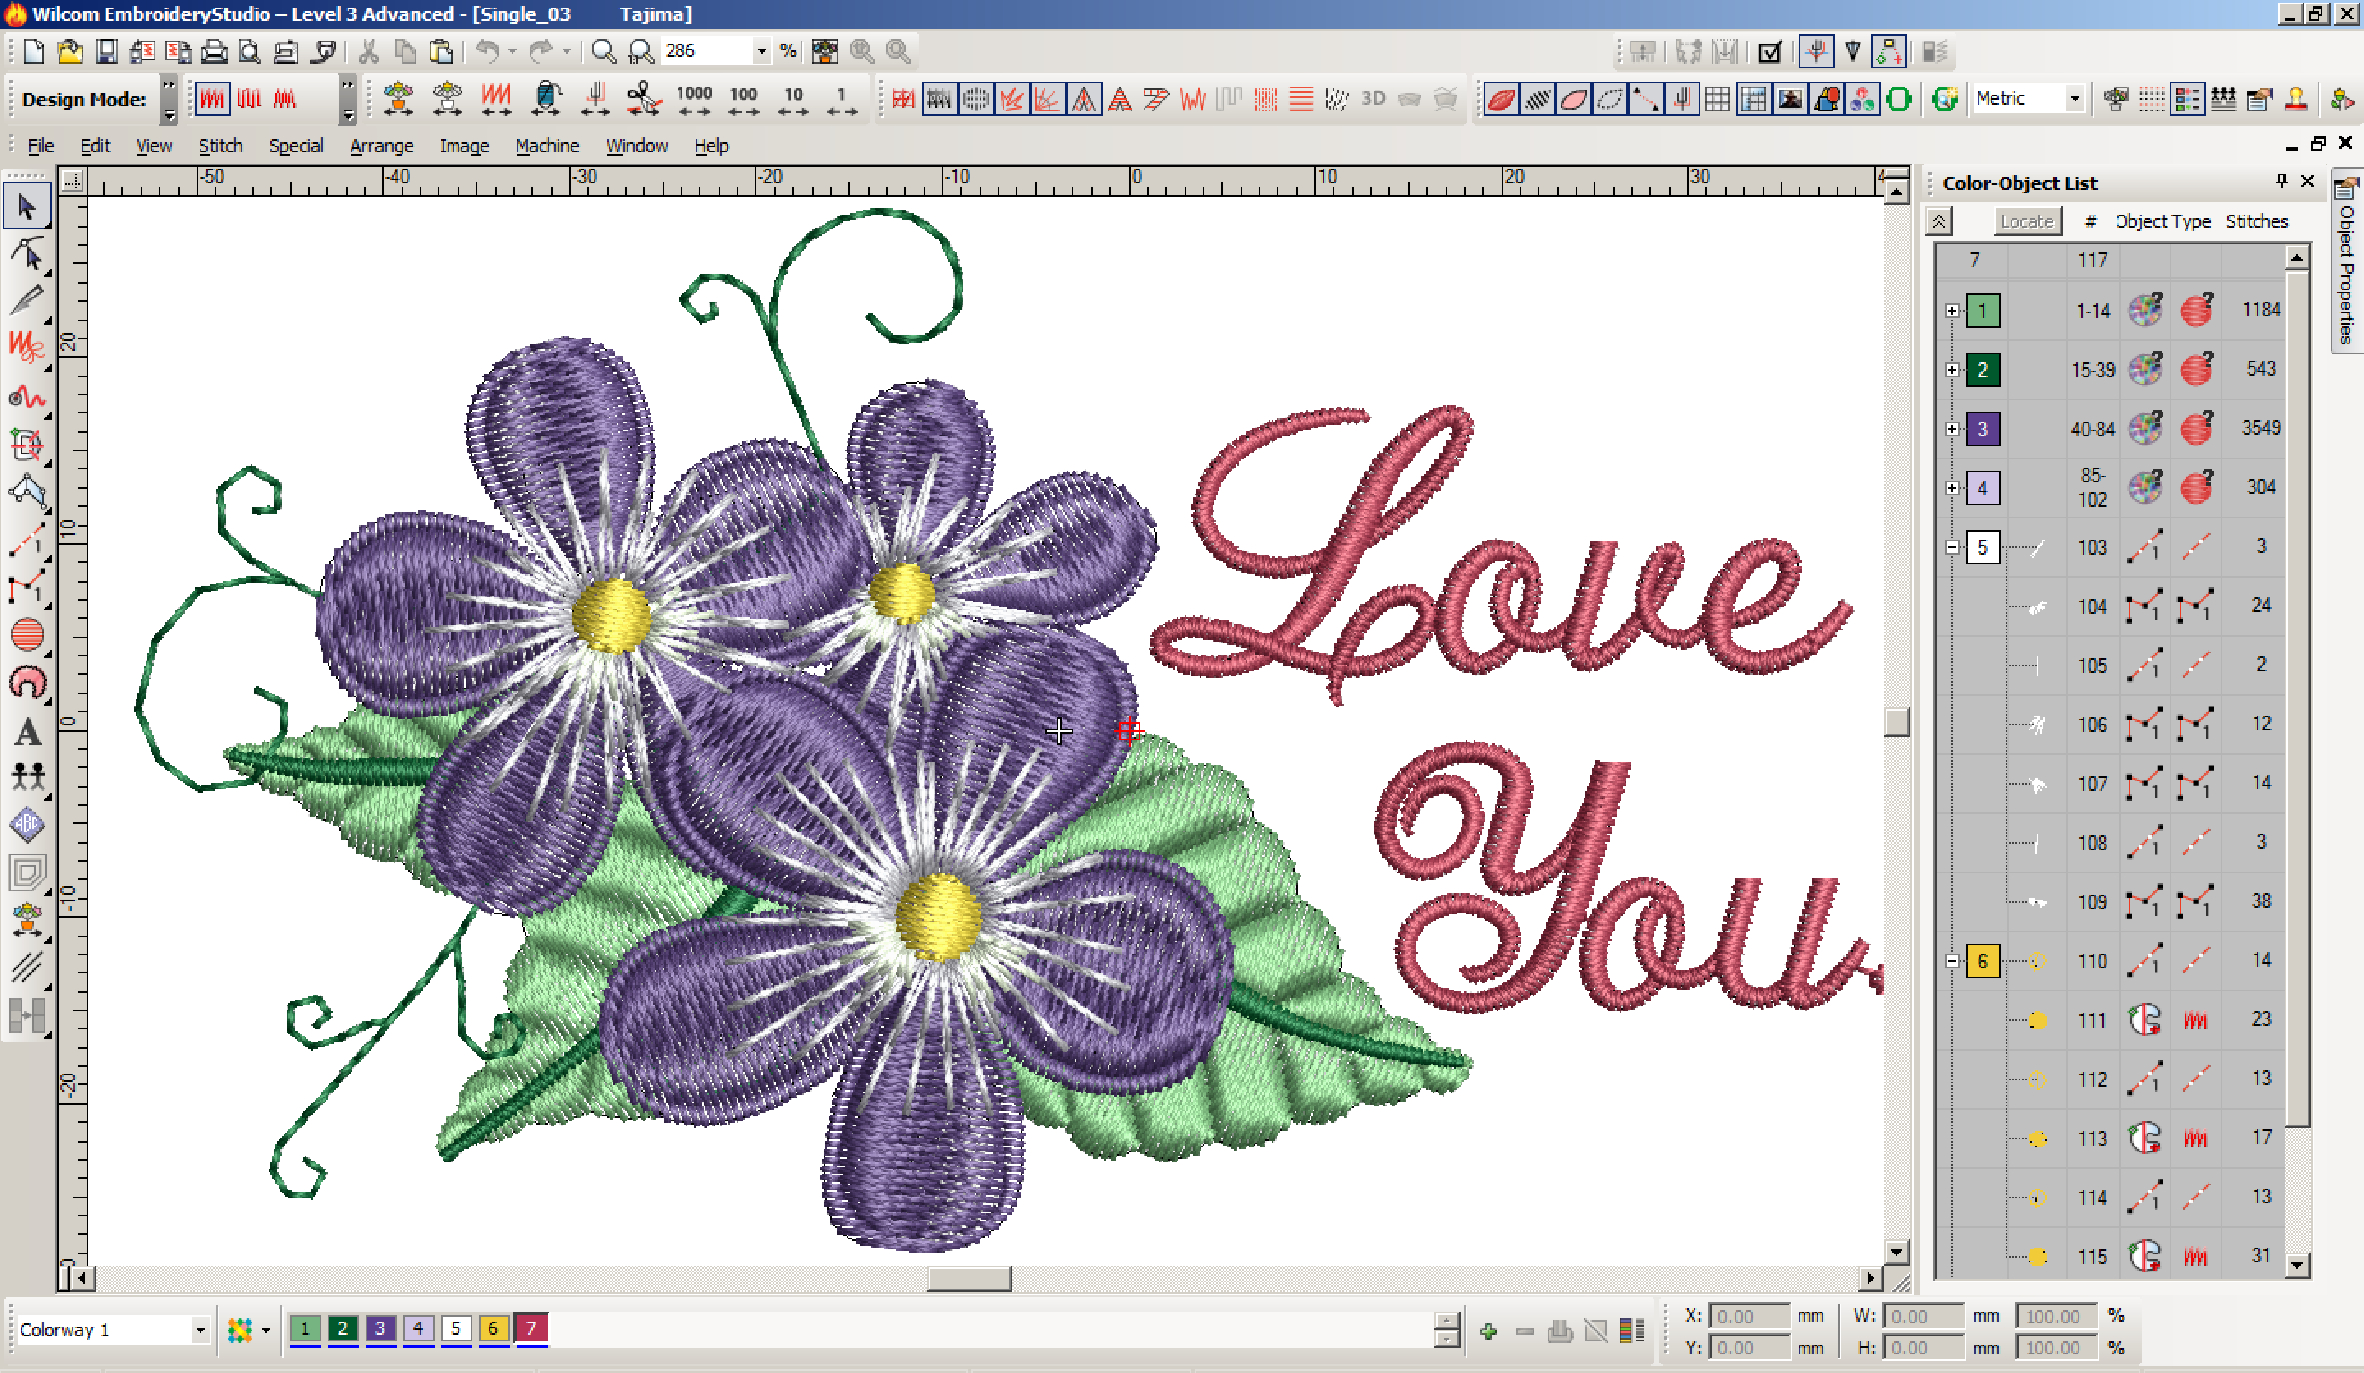 Embroidery Pattern Software Wilcom The Worlds Favourite Embroidery And Multi Decoration